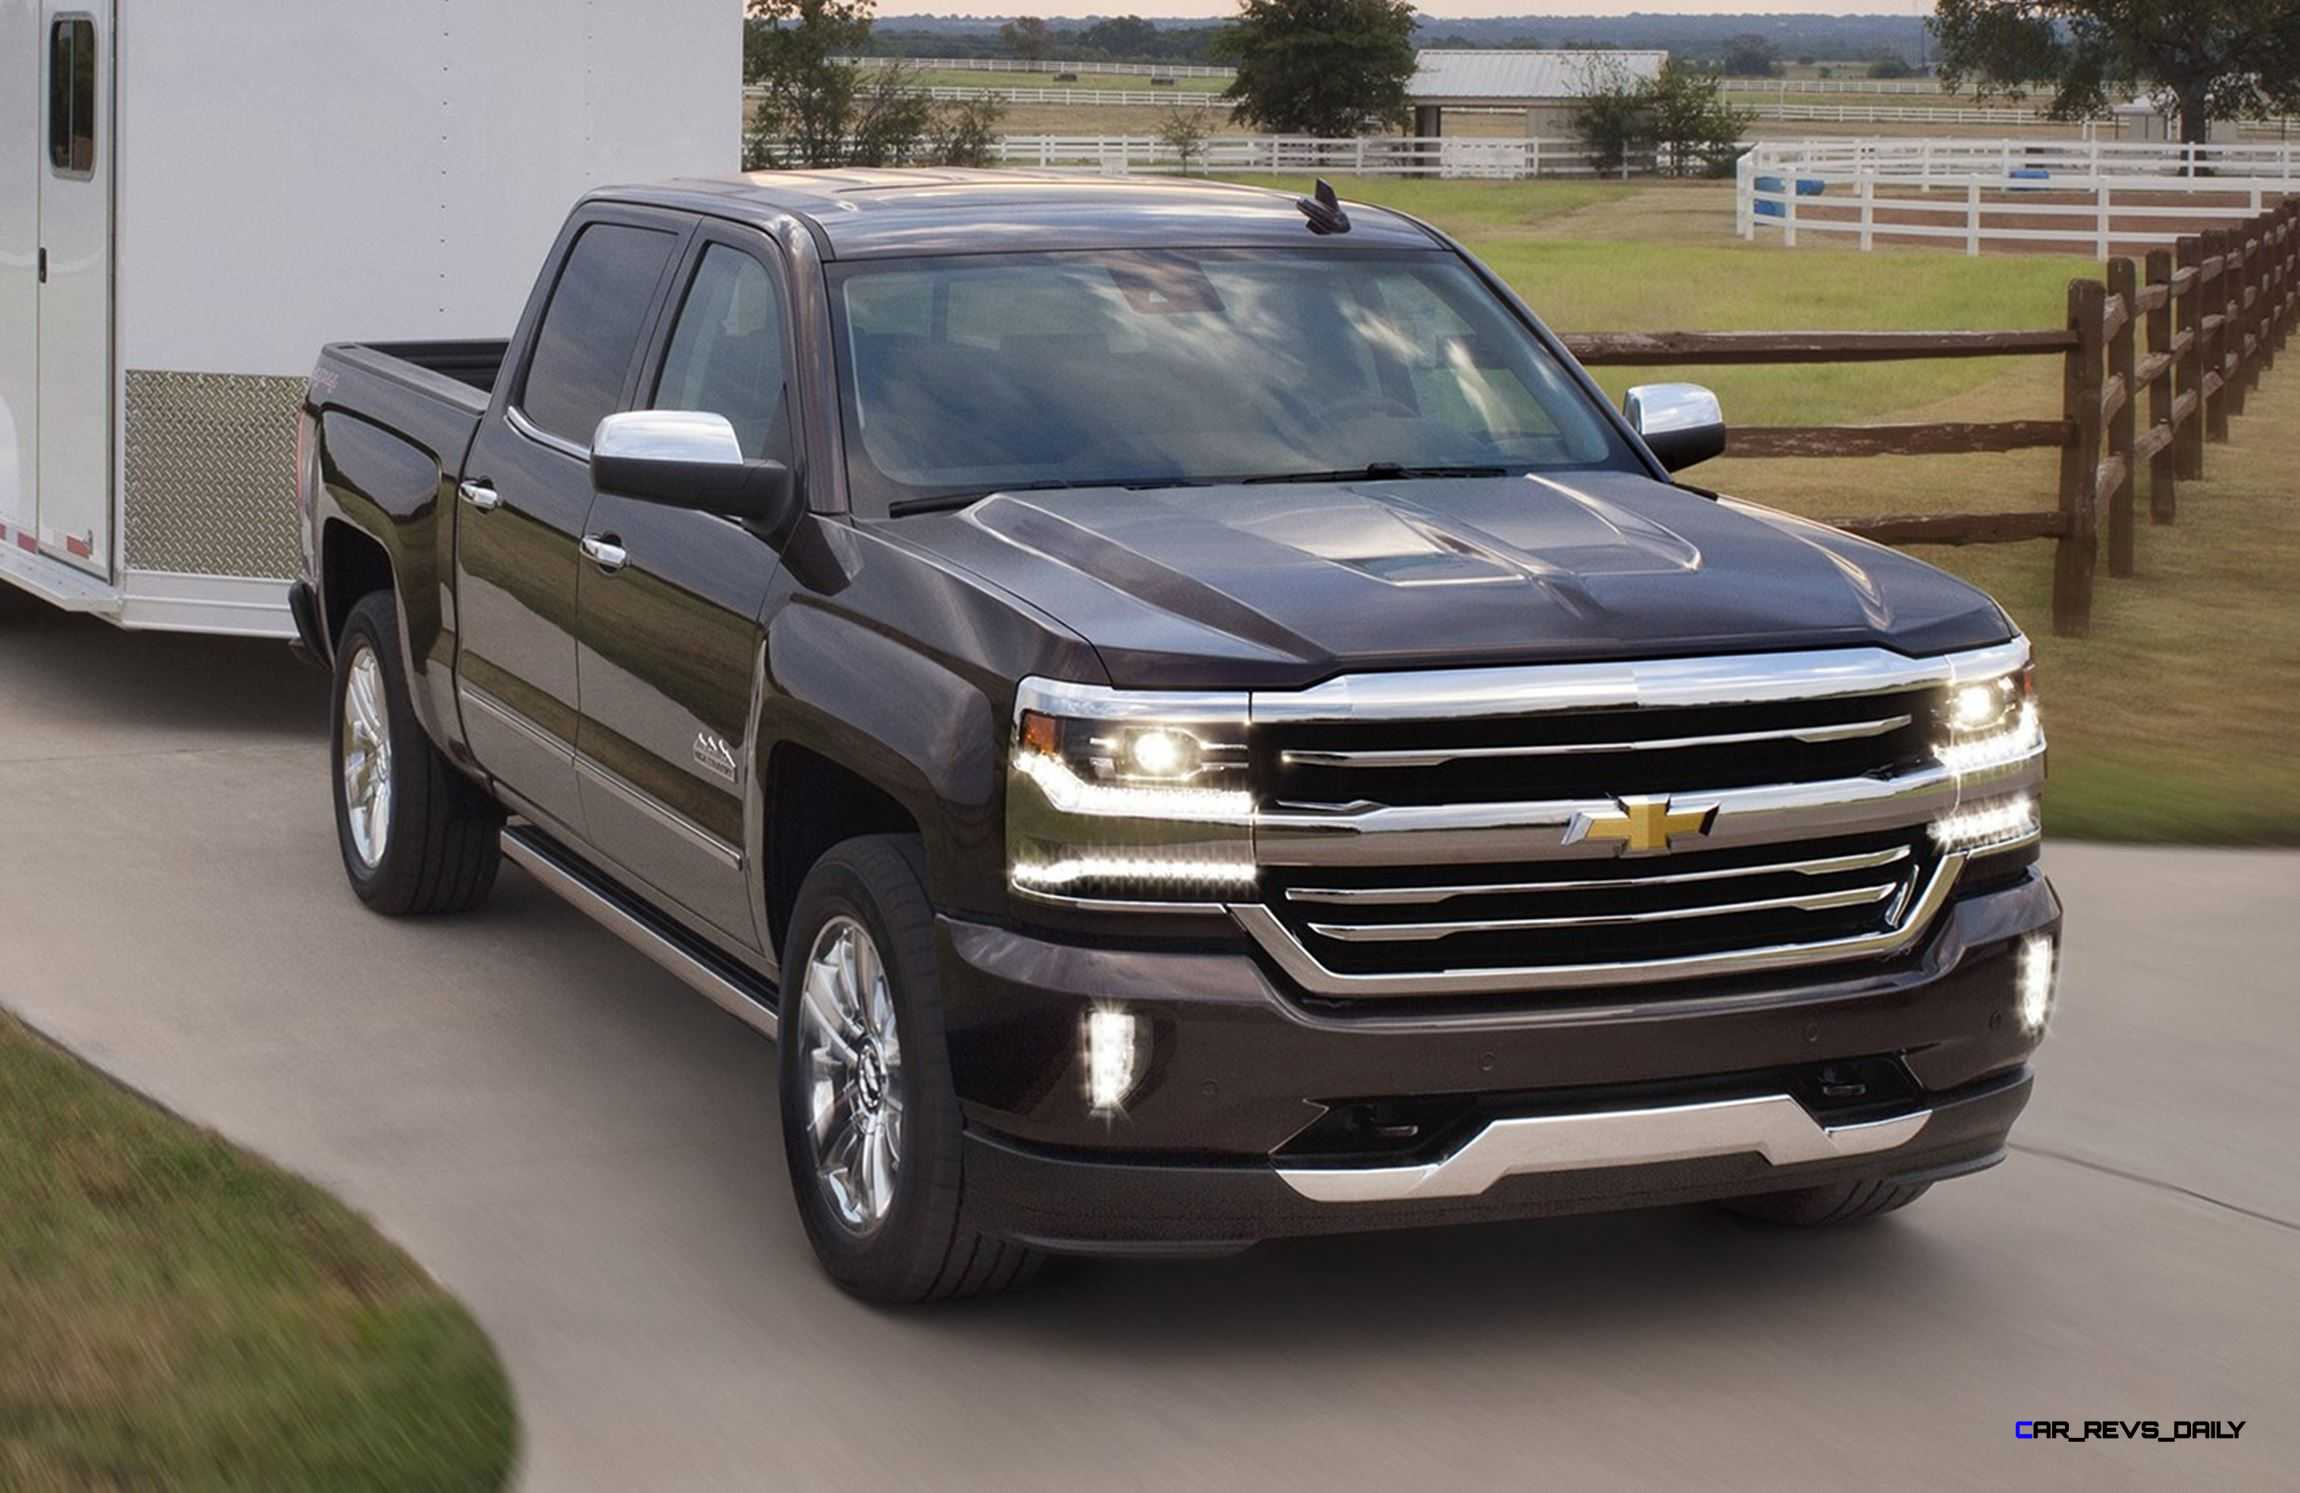 2015 Chevy Silverado 1500 High Country | 2017 - 2018 Best Cars Reviews